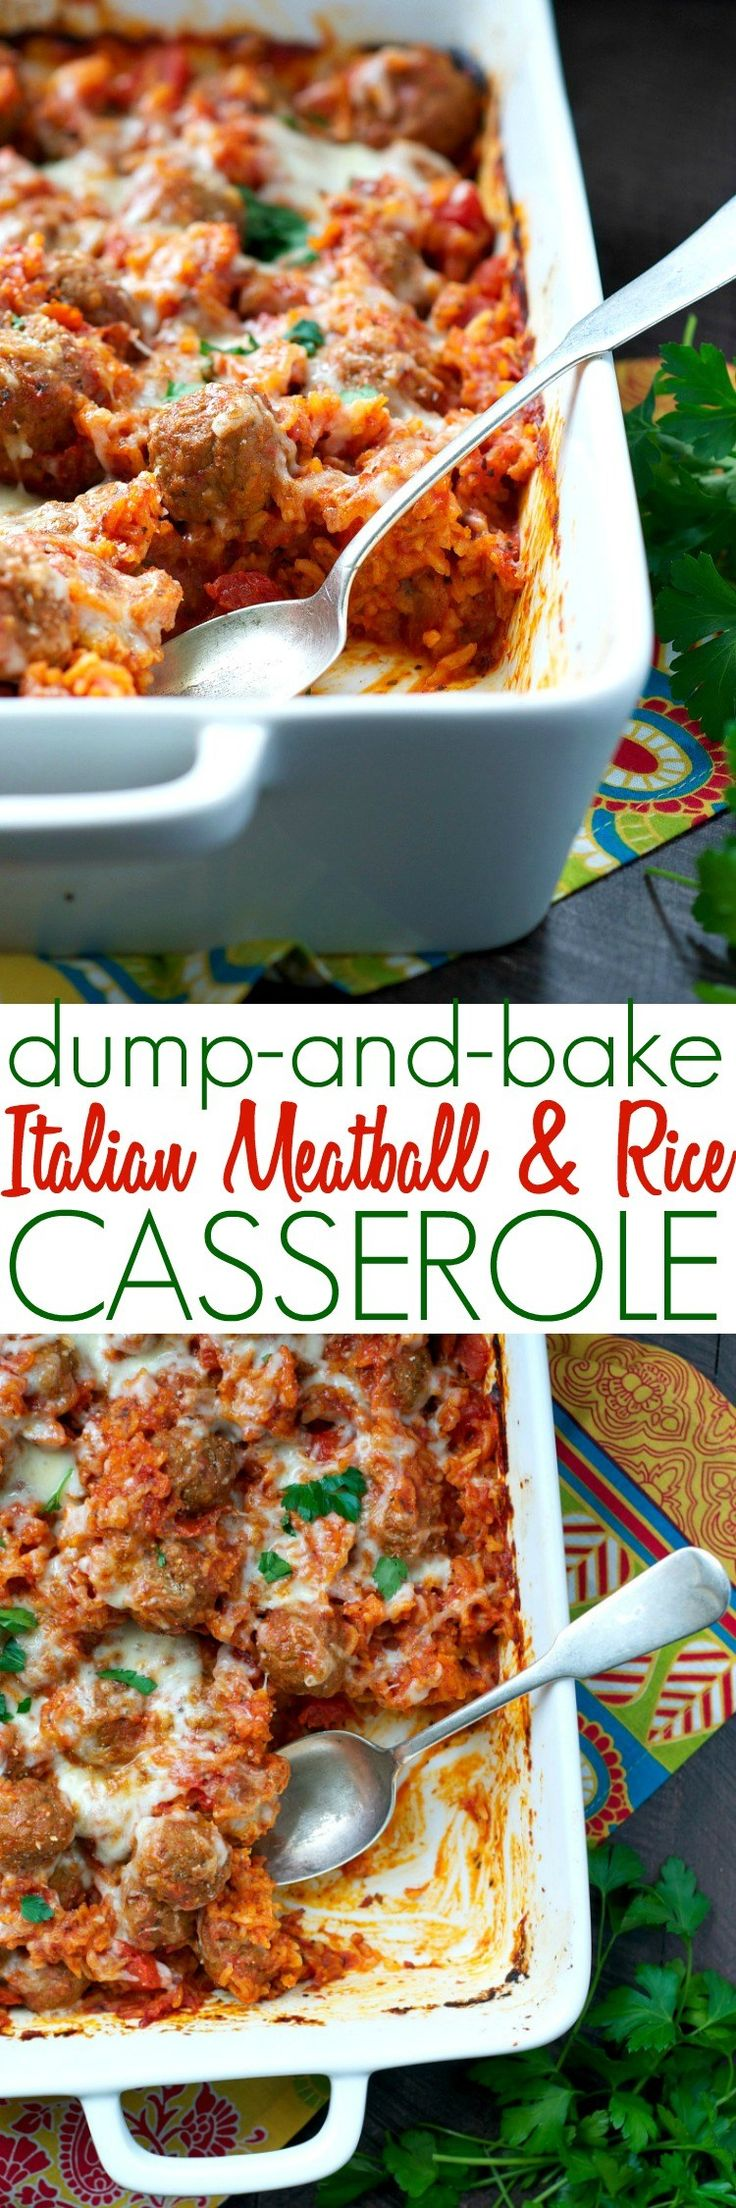 There's no prep necessary for this Dump and Bake Italian Meatball and Rice Casserole! It's the perfect easy dinner solution for your busy weeknights – and your family will love the cozy comfort